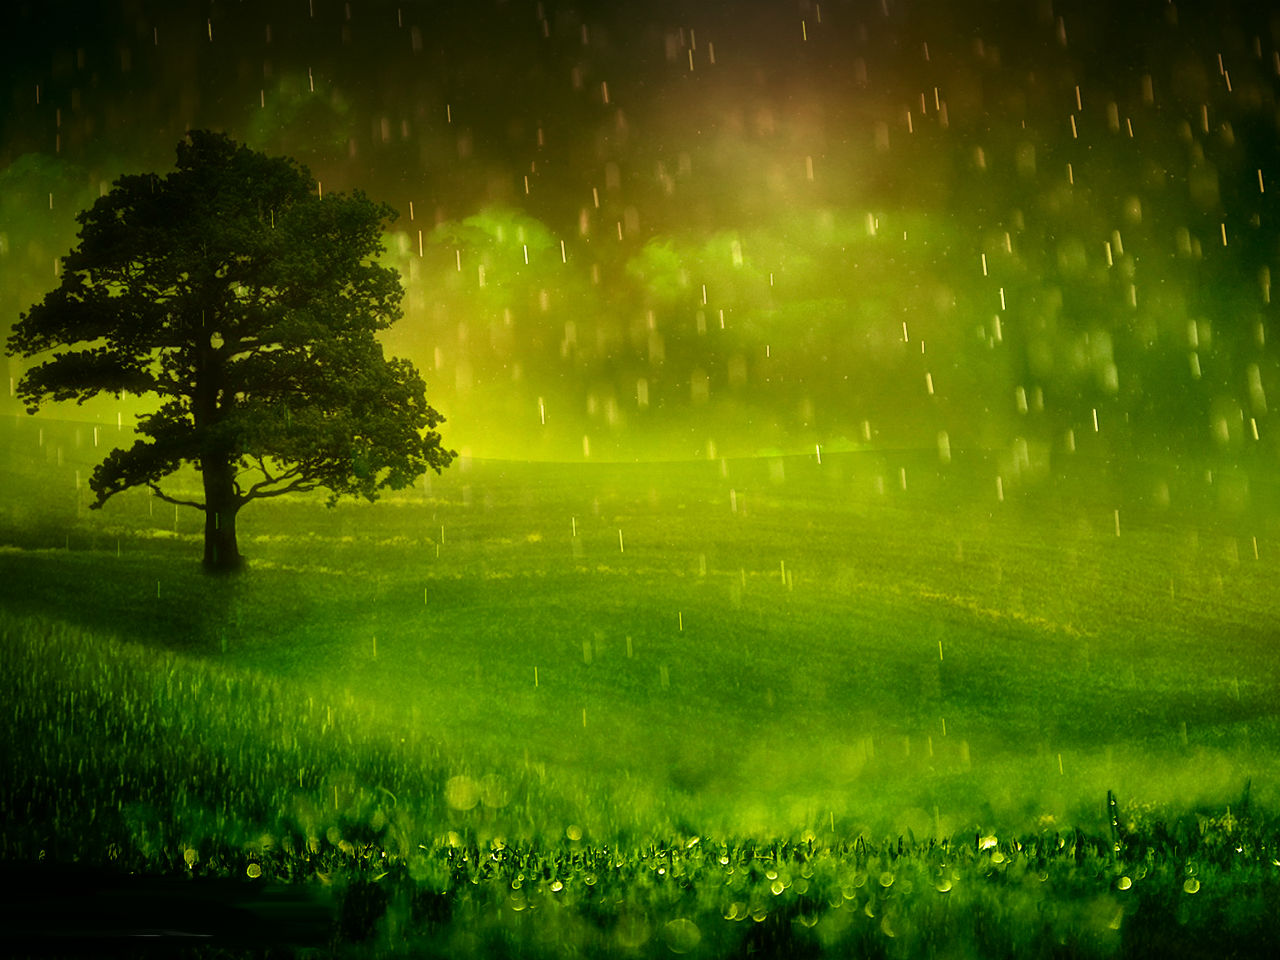 Rainy Day HD Wallpapers Pictures Images Backgrounds Photos 1280x960